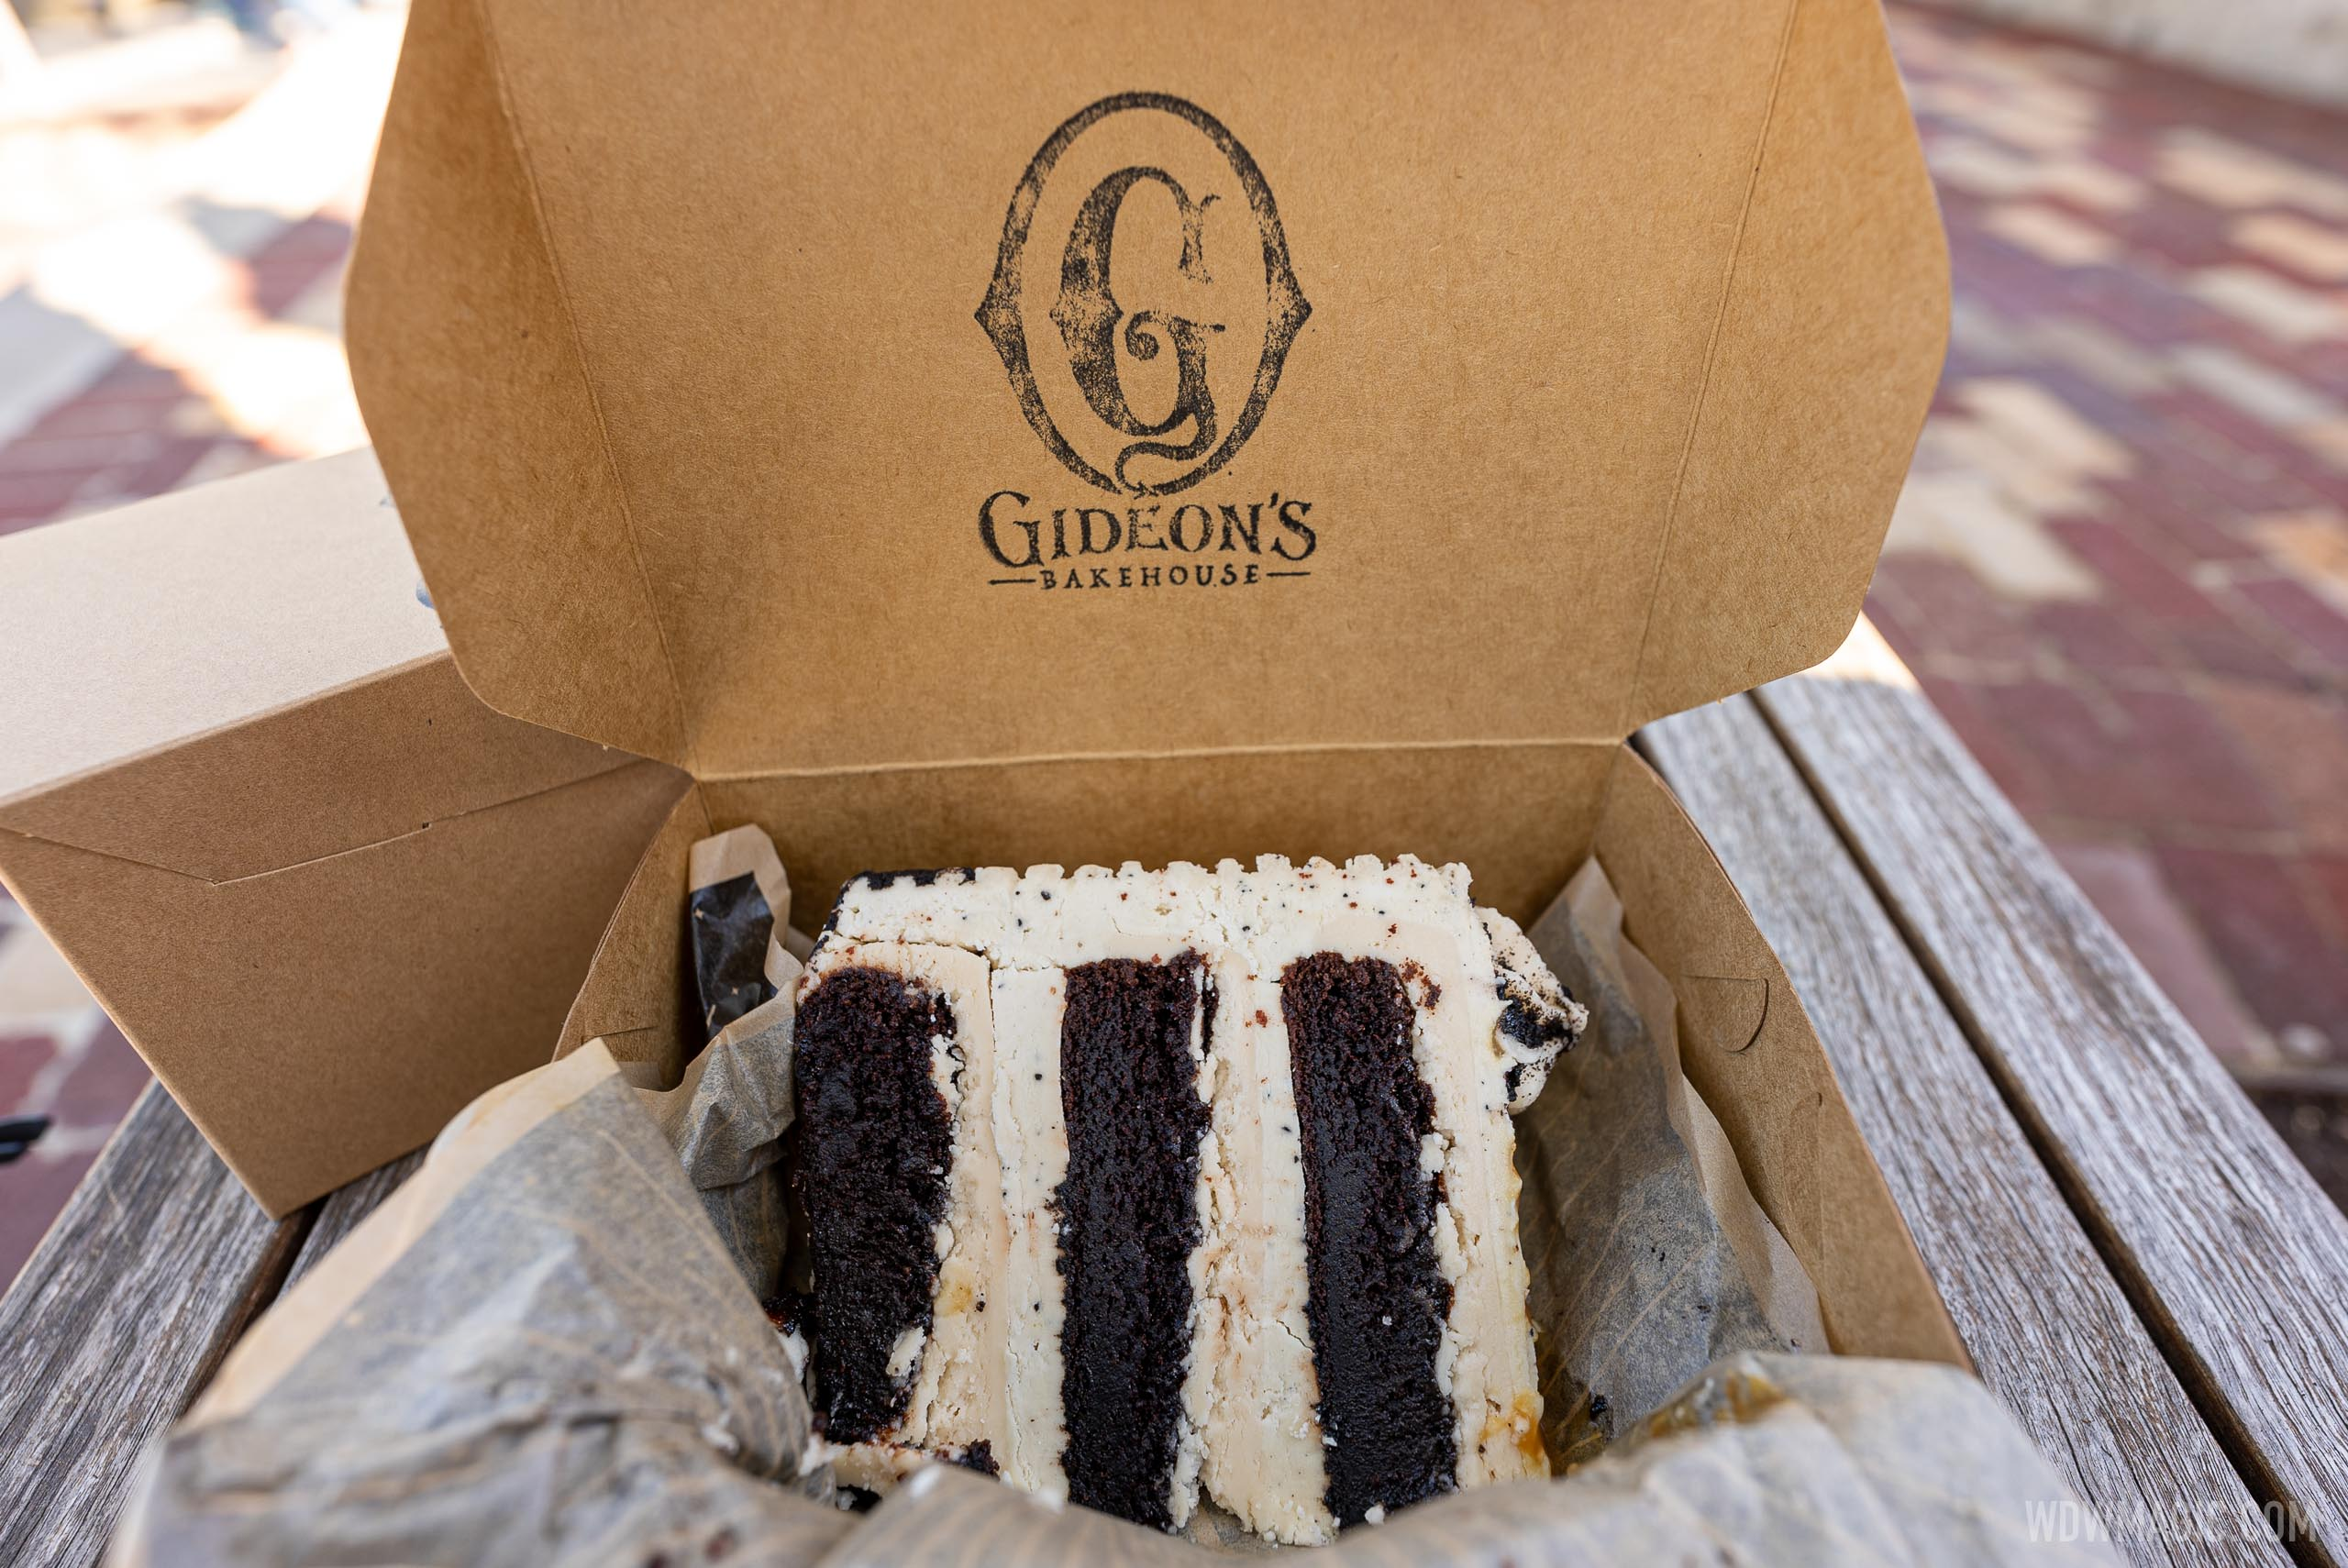 Gideon's Double Frosted cake slice